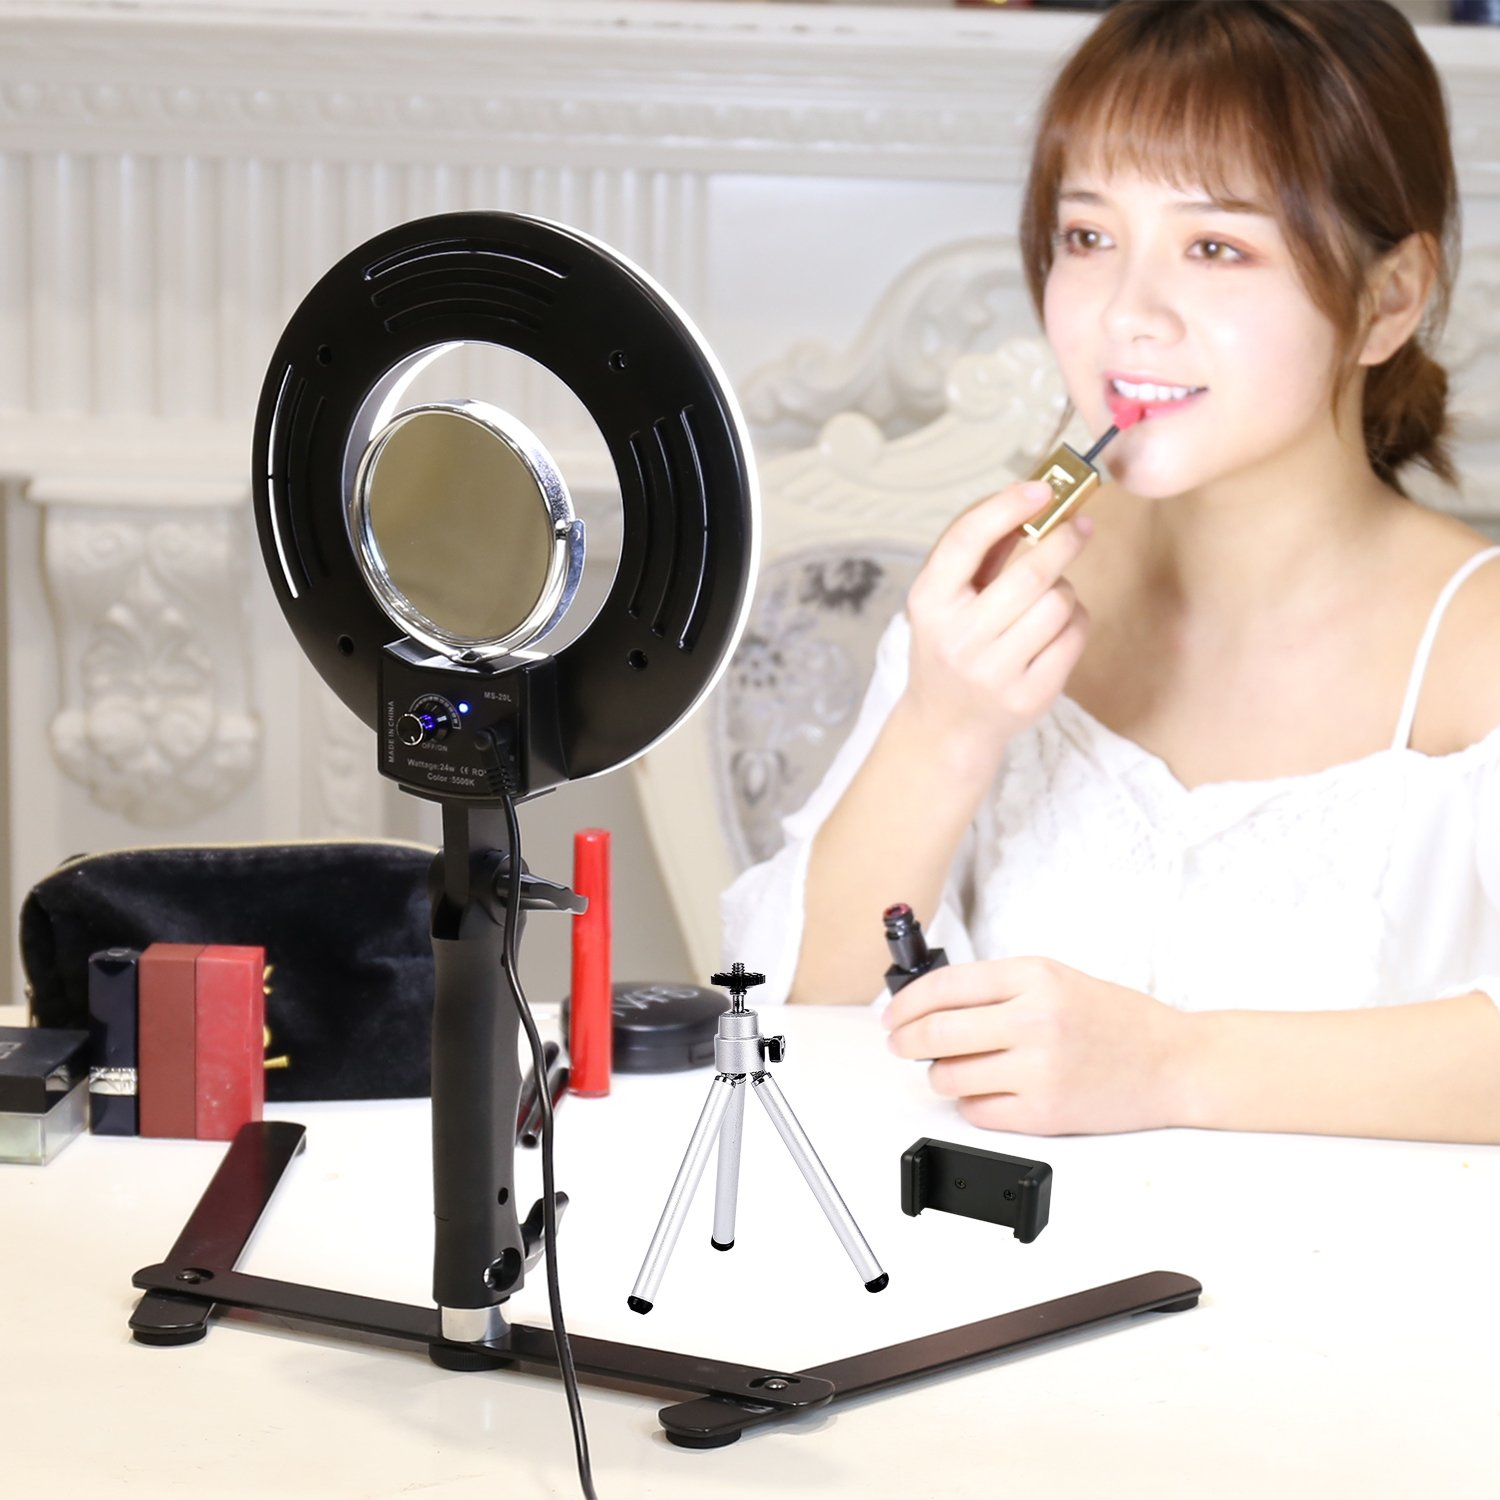 Table Top Photo LED Selfie Ring Light with Desktop Stand for Makeup 8-inch Dimmable 24W 5500K O Circular Beauty Lamp+3'' Mirror+Mini Tripod+Phone Clamp,for YouTube Vine Self-Portrait Video Filming